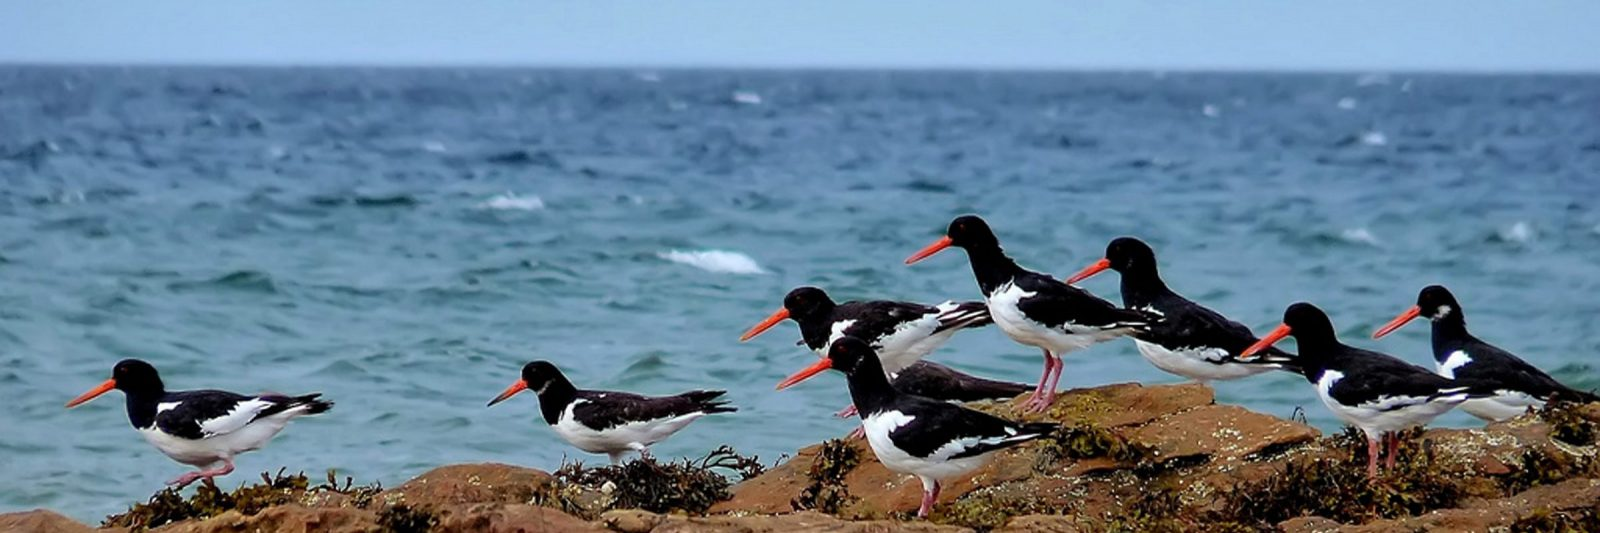 Banner image - oyster catchers